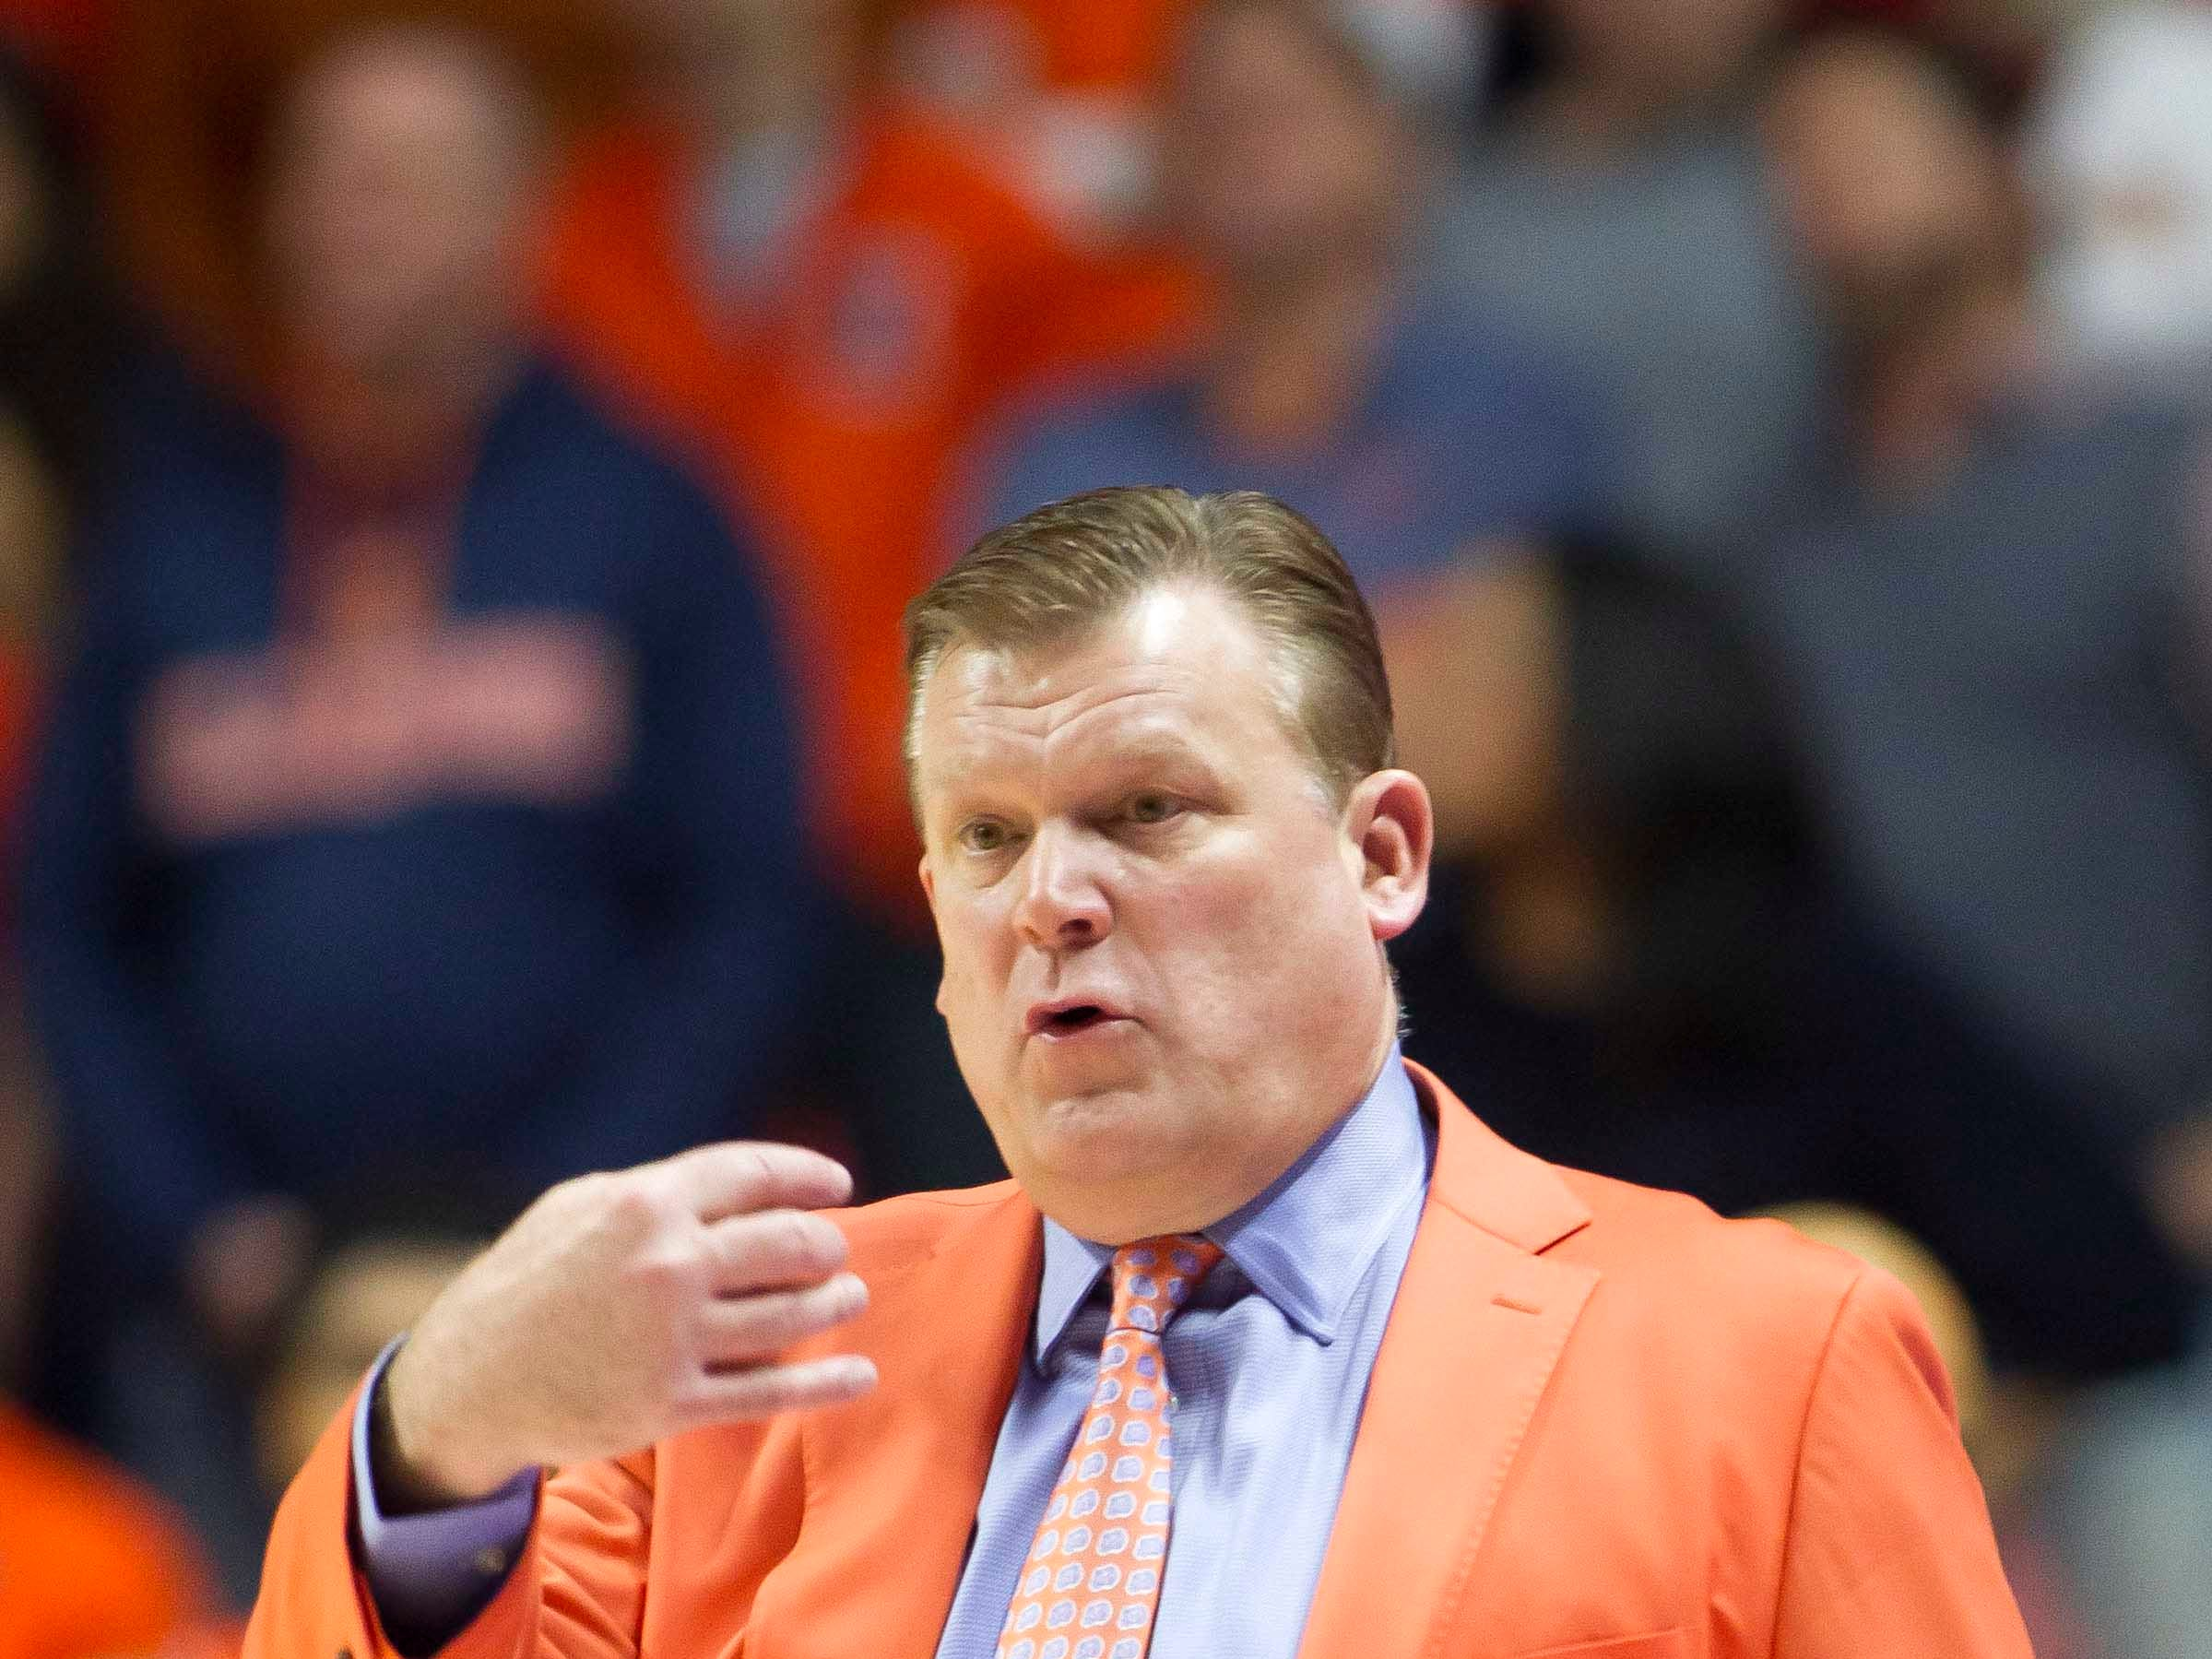 Feb 5, 2019; Champaign, IL, USA; Illinois Fighting Illini head coach Brad Underwood signals to his team during the second half against the Michigan State Spartans at State Farm Center. Mandatory Credit: Mike Granse-USA TODAY Sports